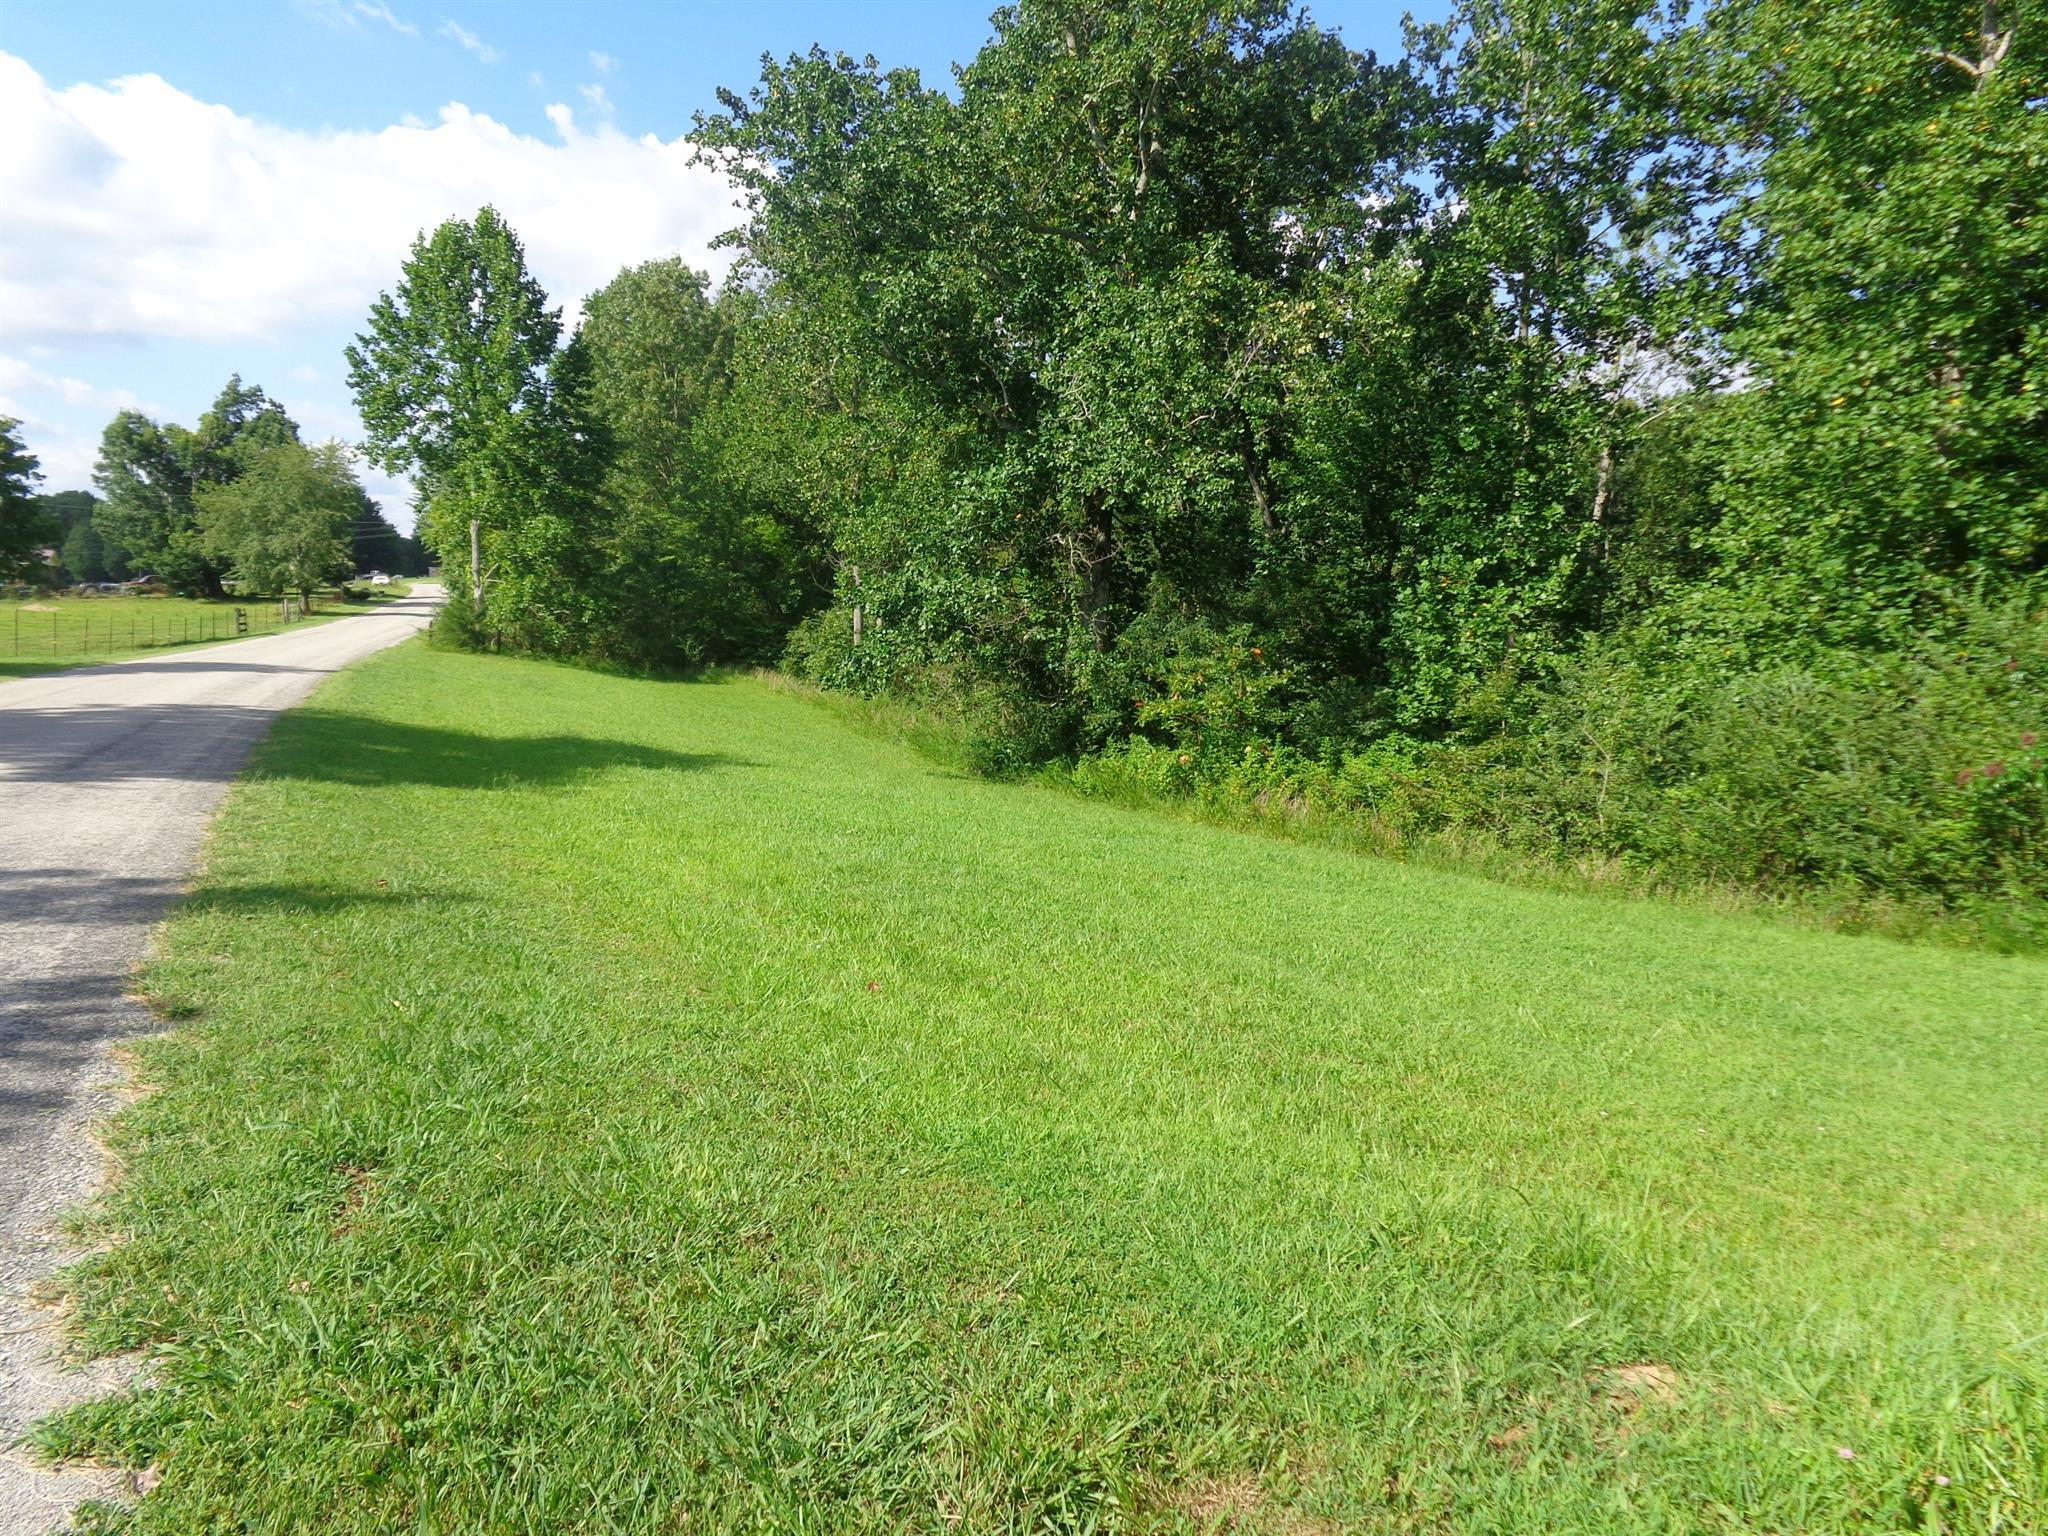 0 Shuler Branch Rd, Ethridge, TN 38456 - Ethridge, TN real estate listing